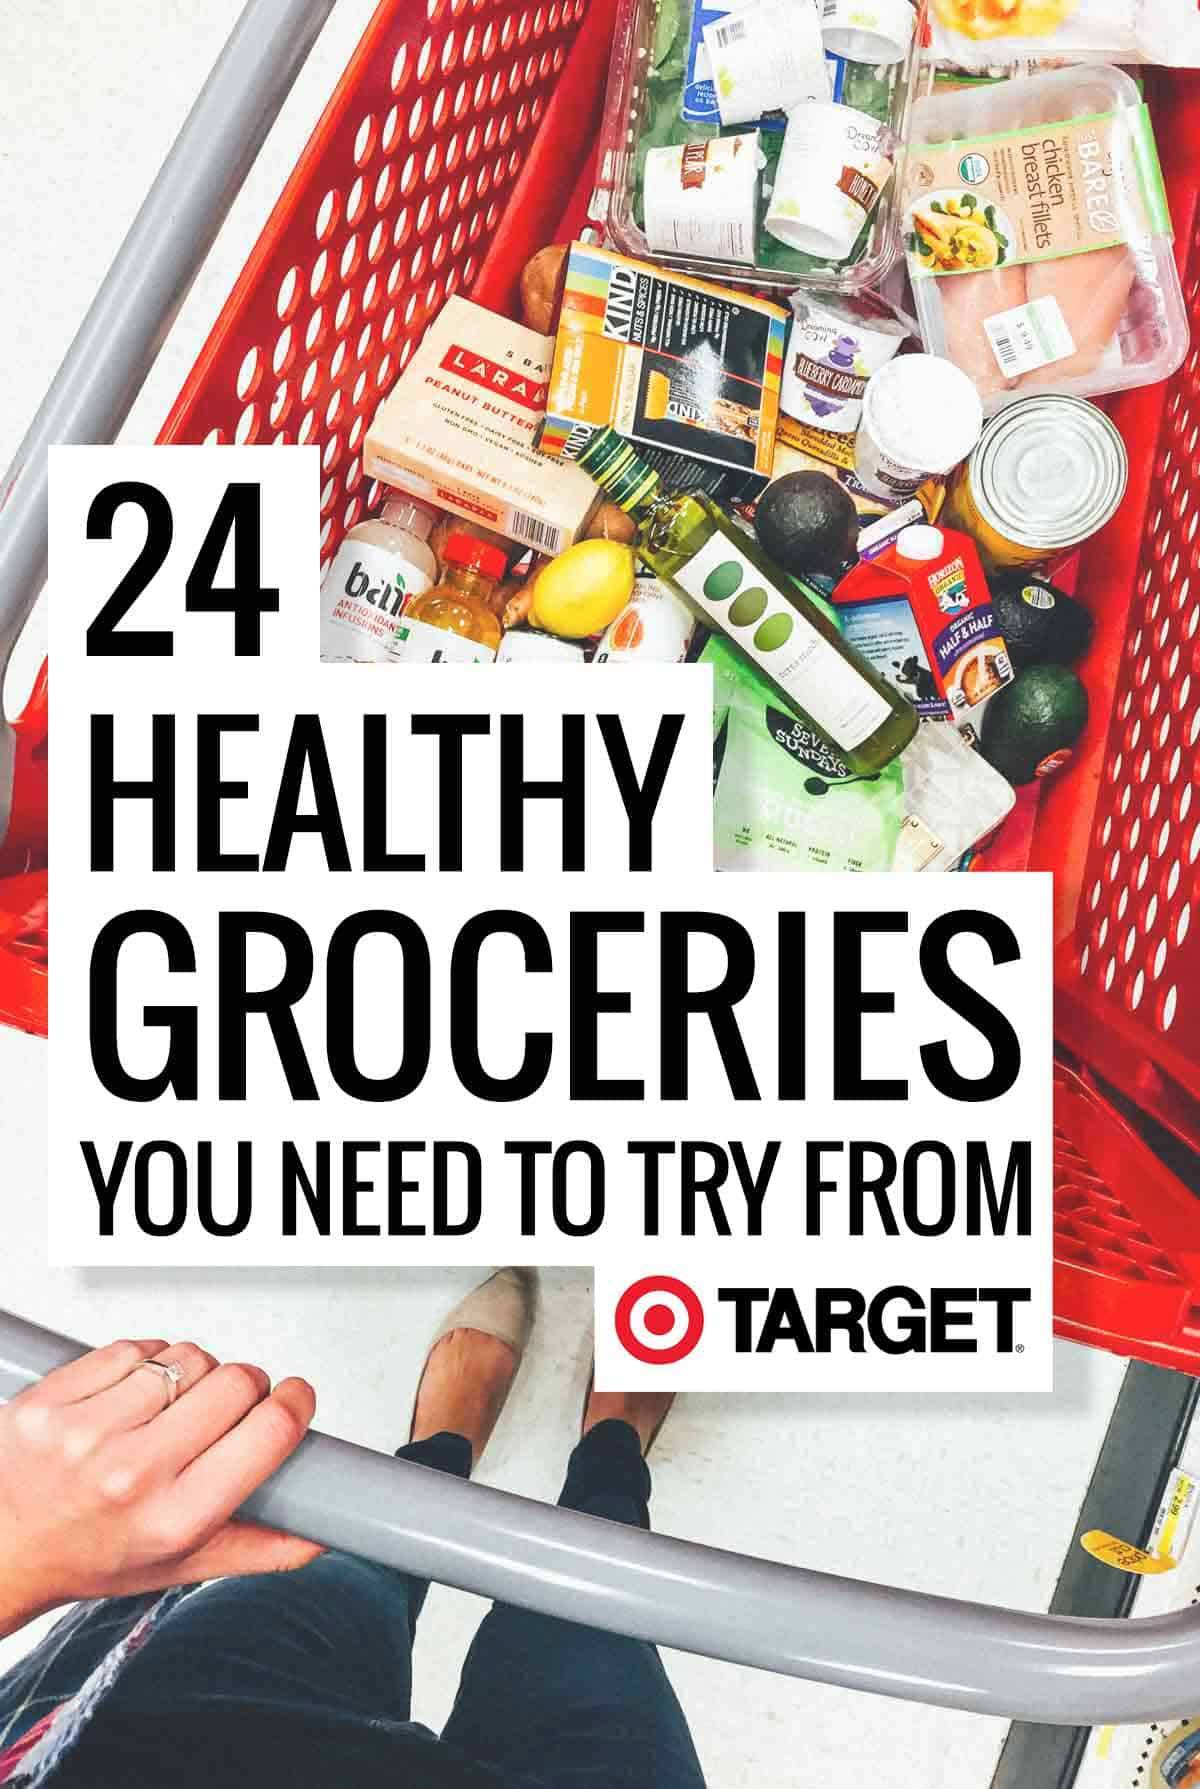 Bad Shop 24 24 Healthy Groceries You Need To Try From Target Pinch Of Yum